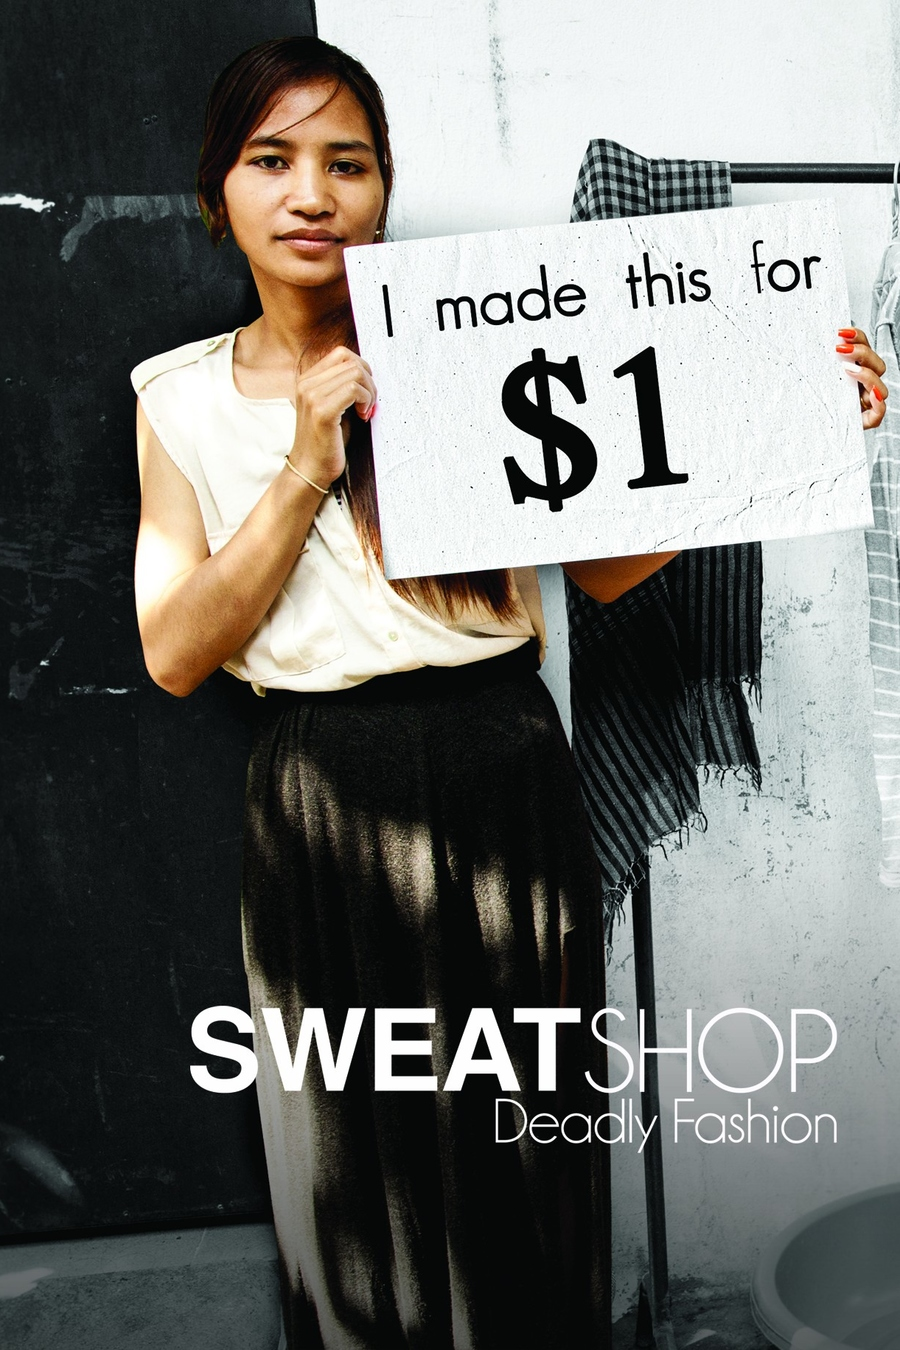 Sweat Shop: Deadly Fashion